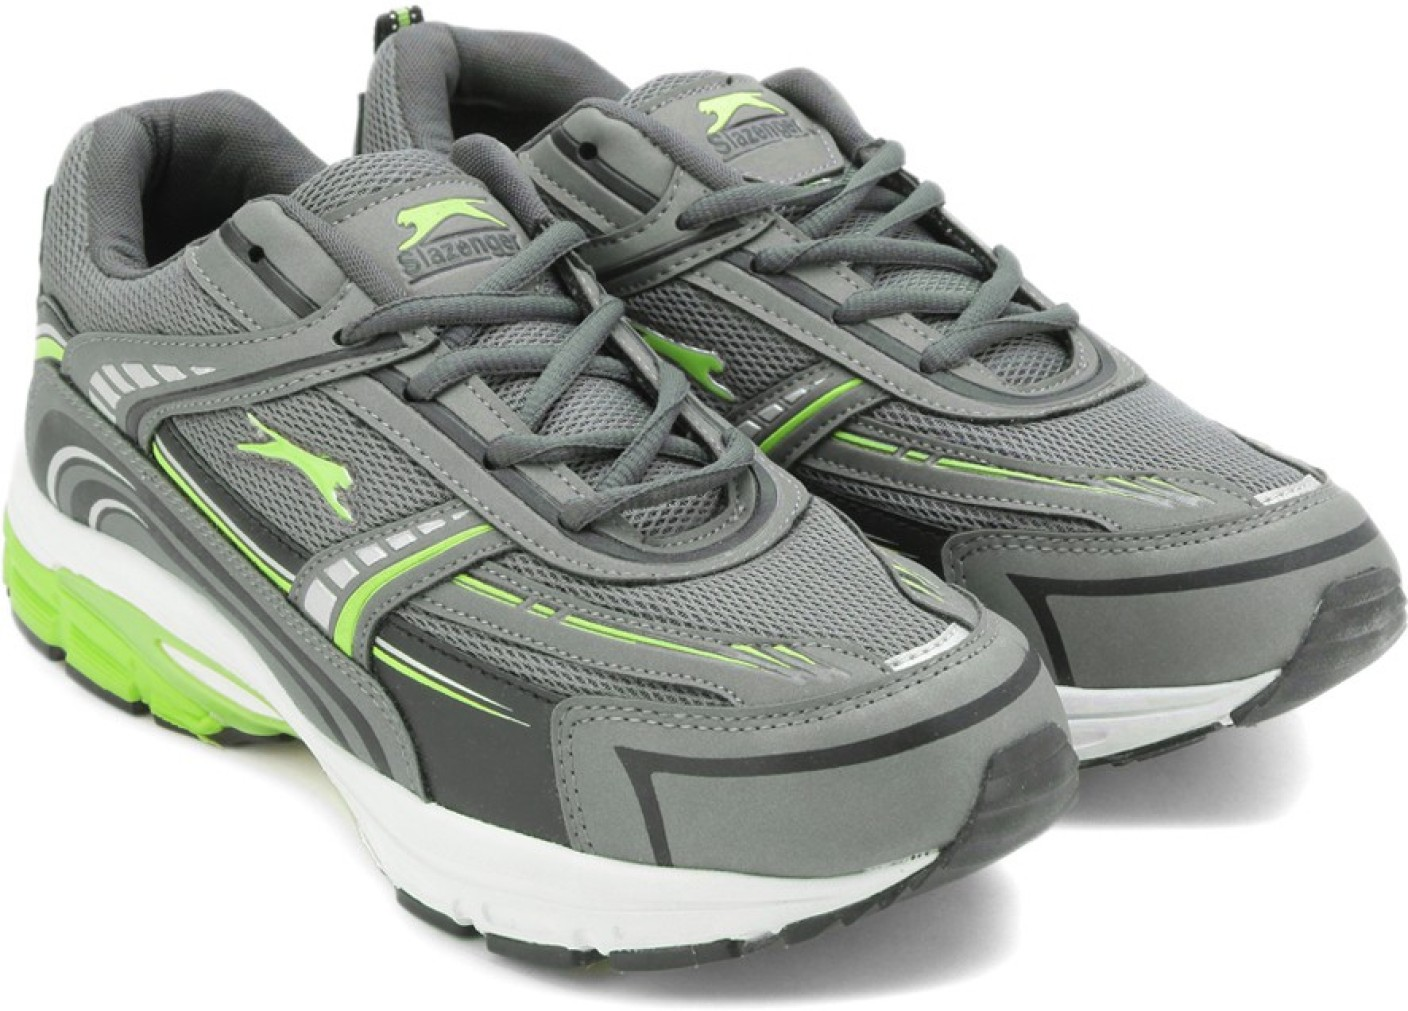 Best Deal On Sports Shoes Online